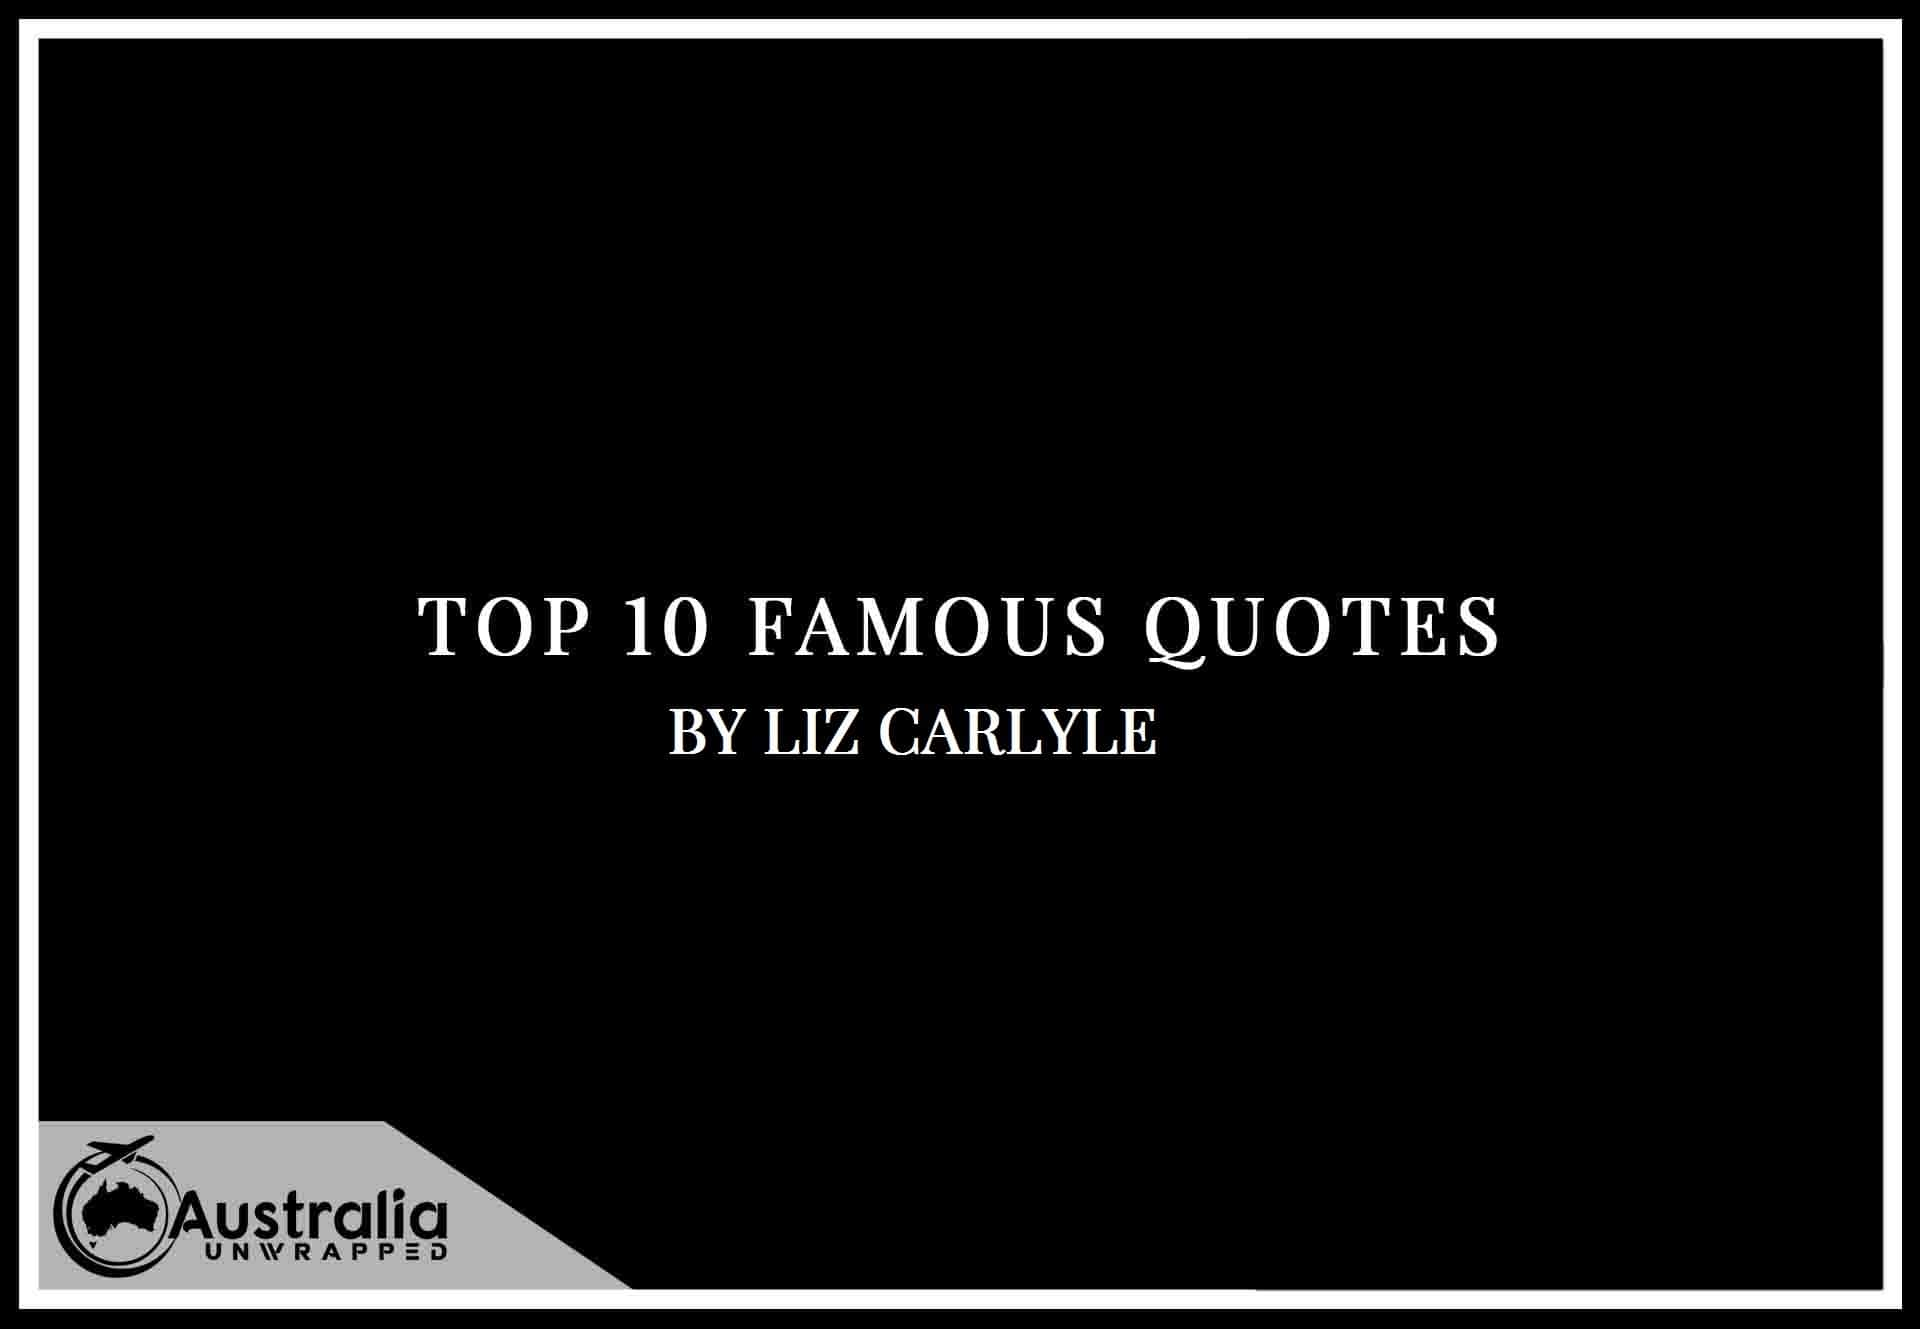 Liz Carlyle's Top 10 Popular and Famous Quotes